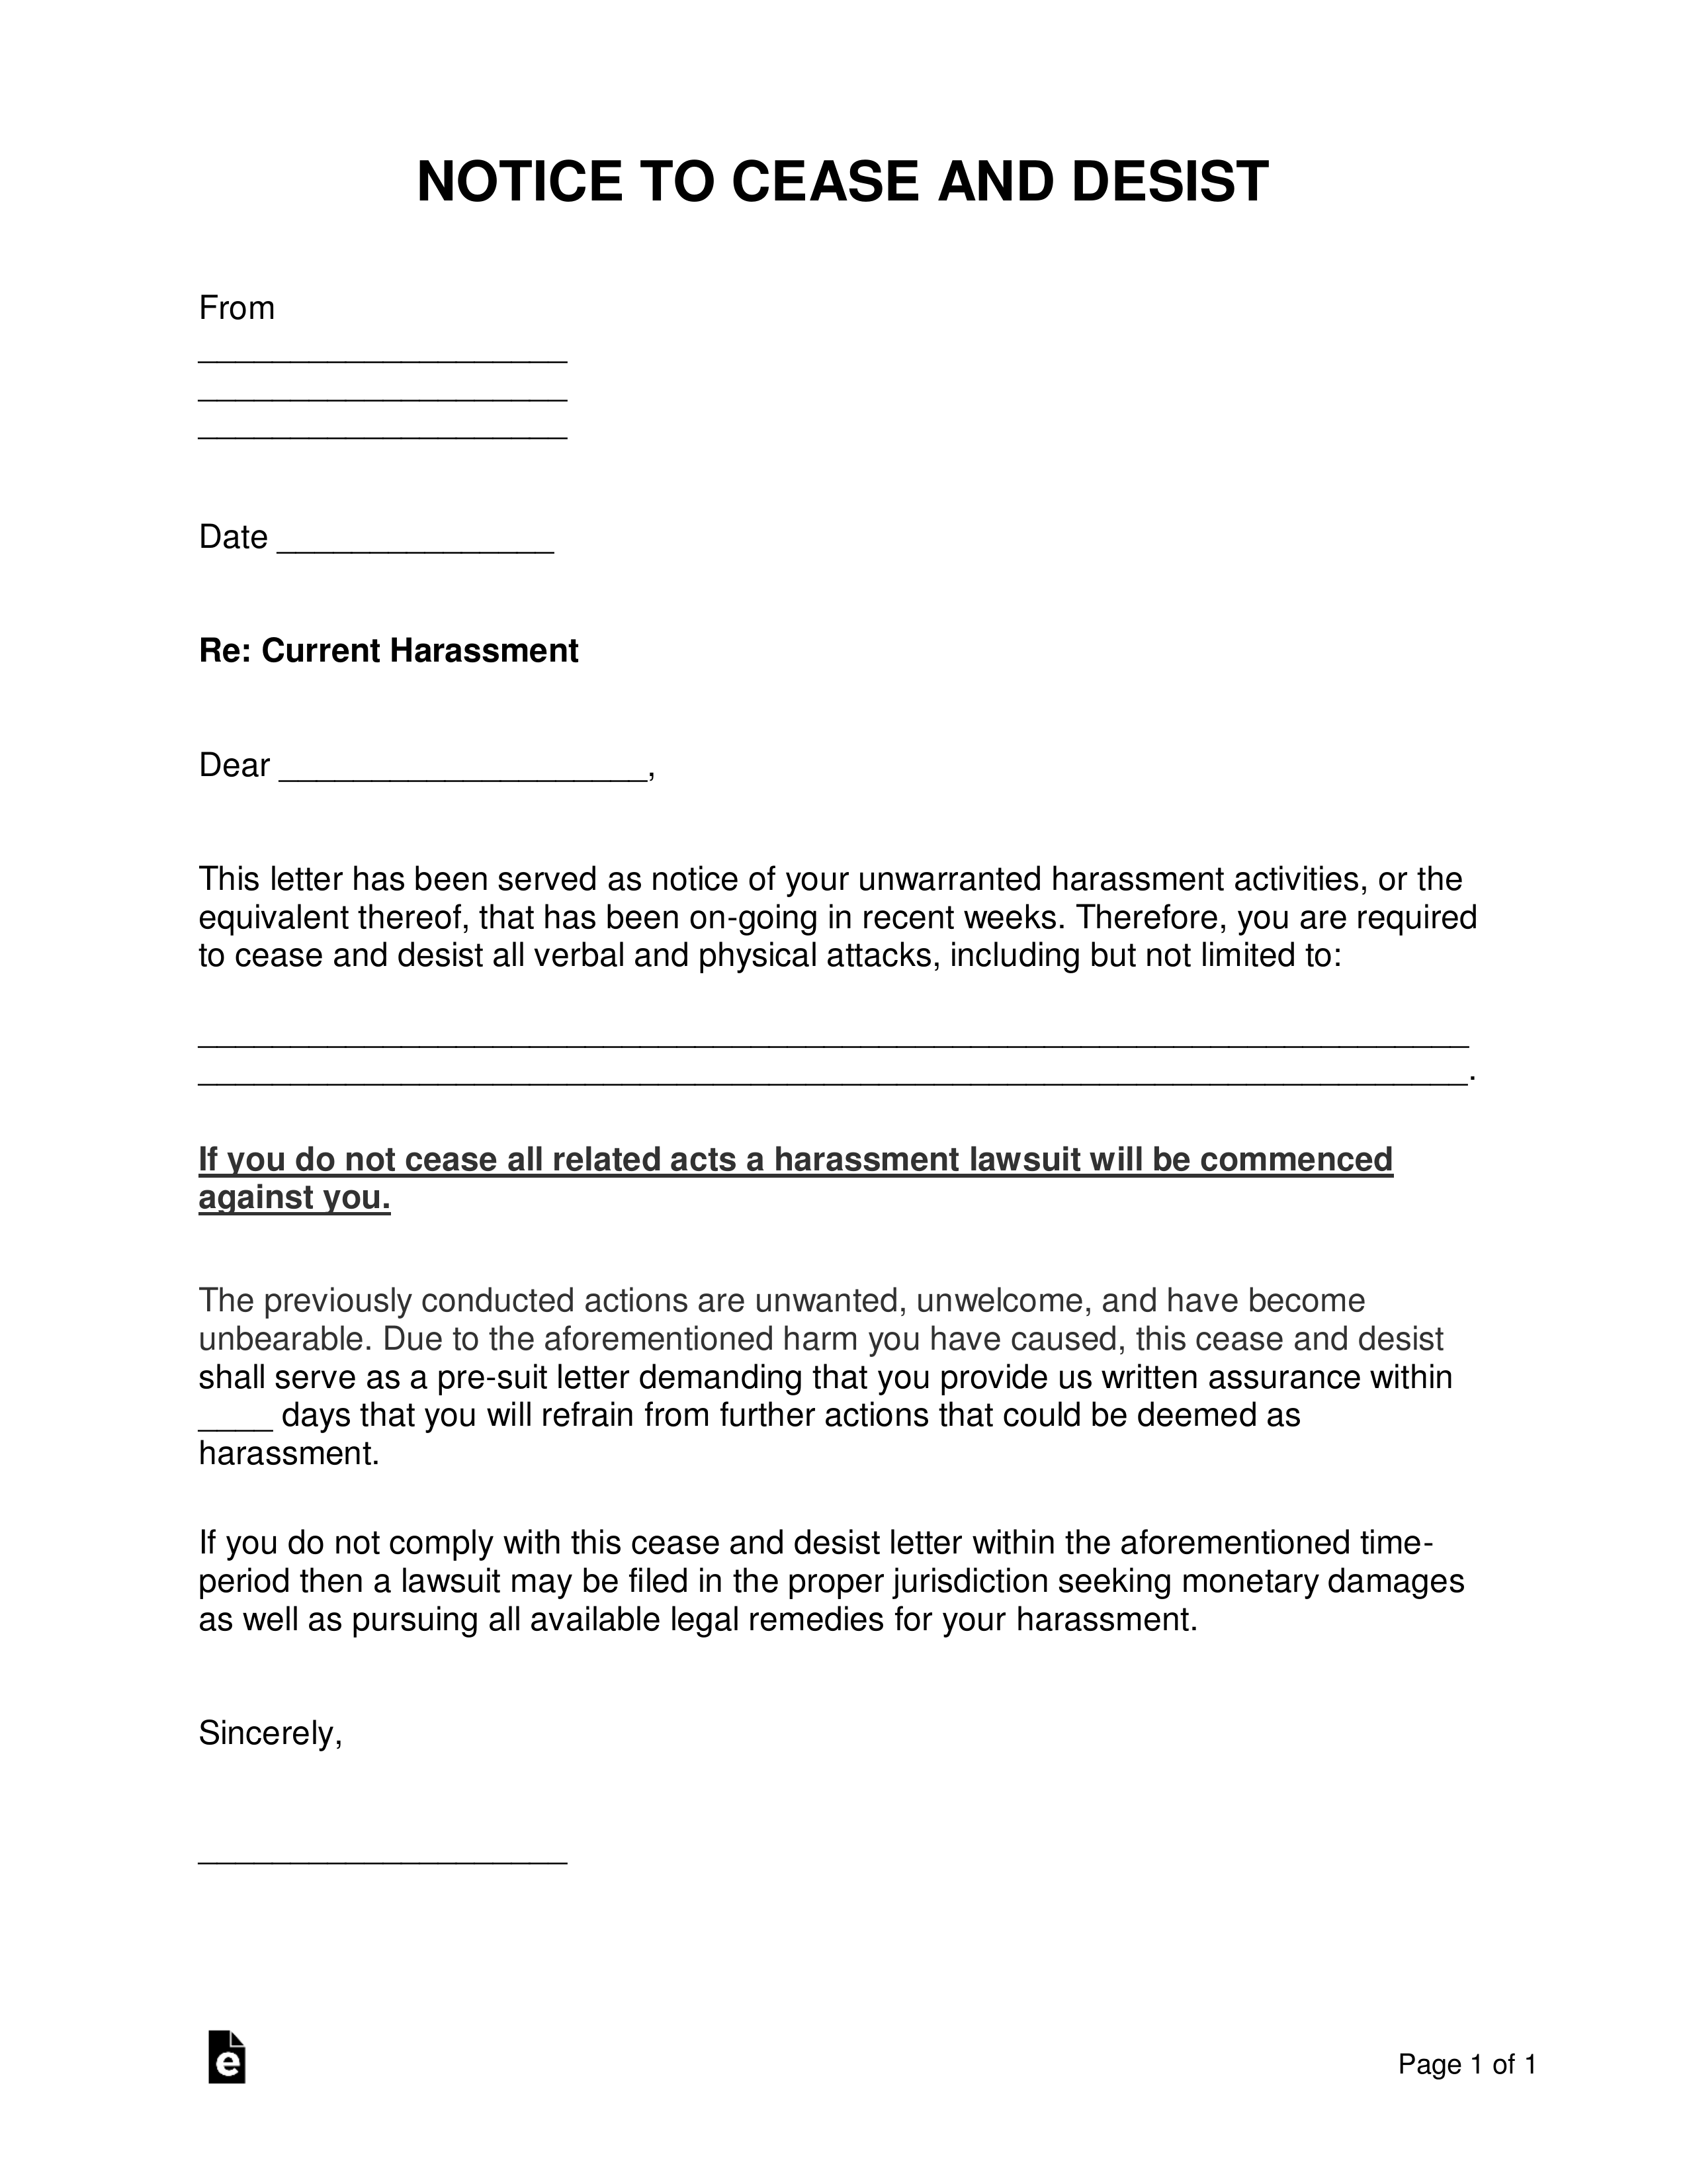 Cease & Desist Letter Template from eforms.com